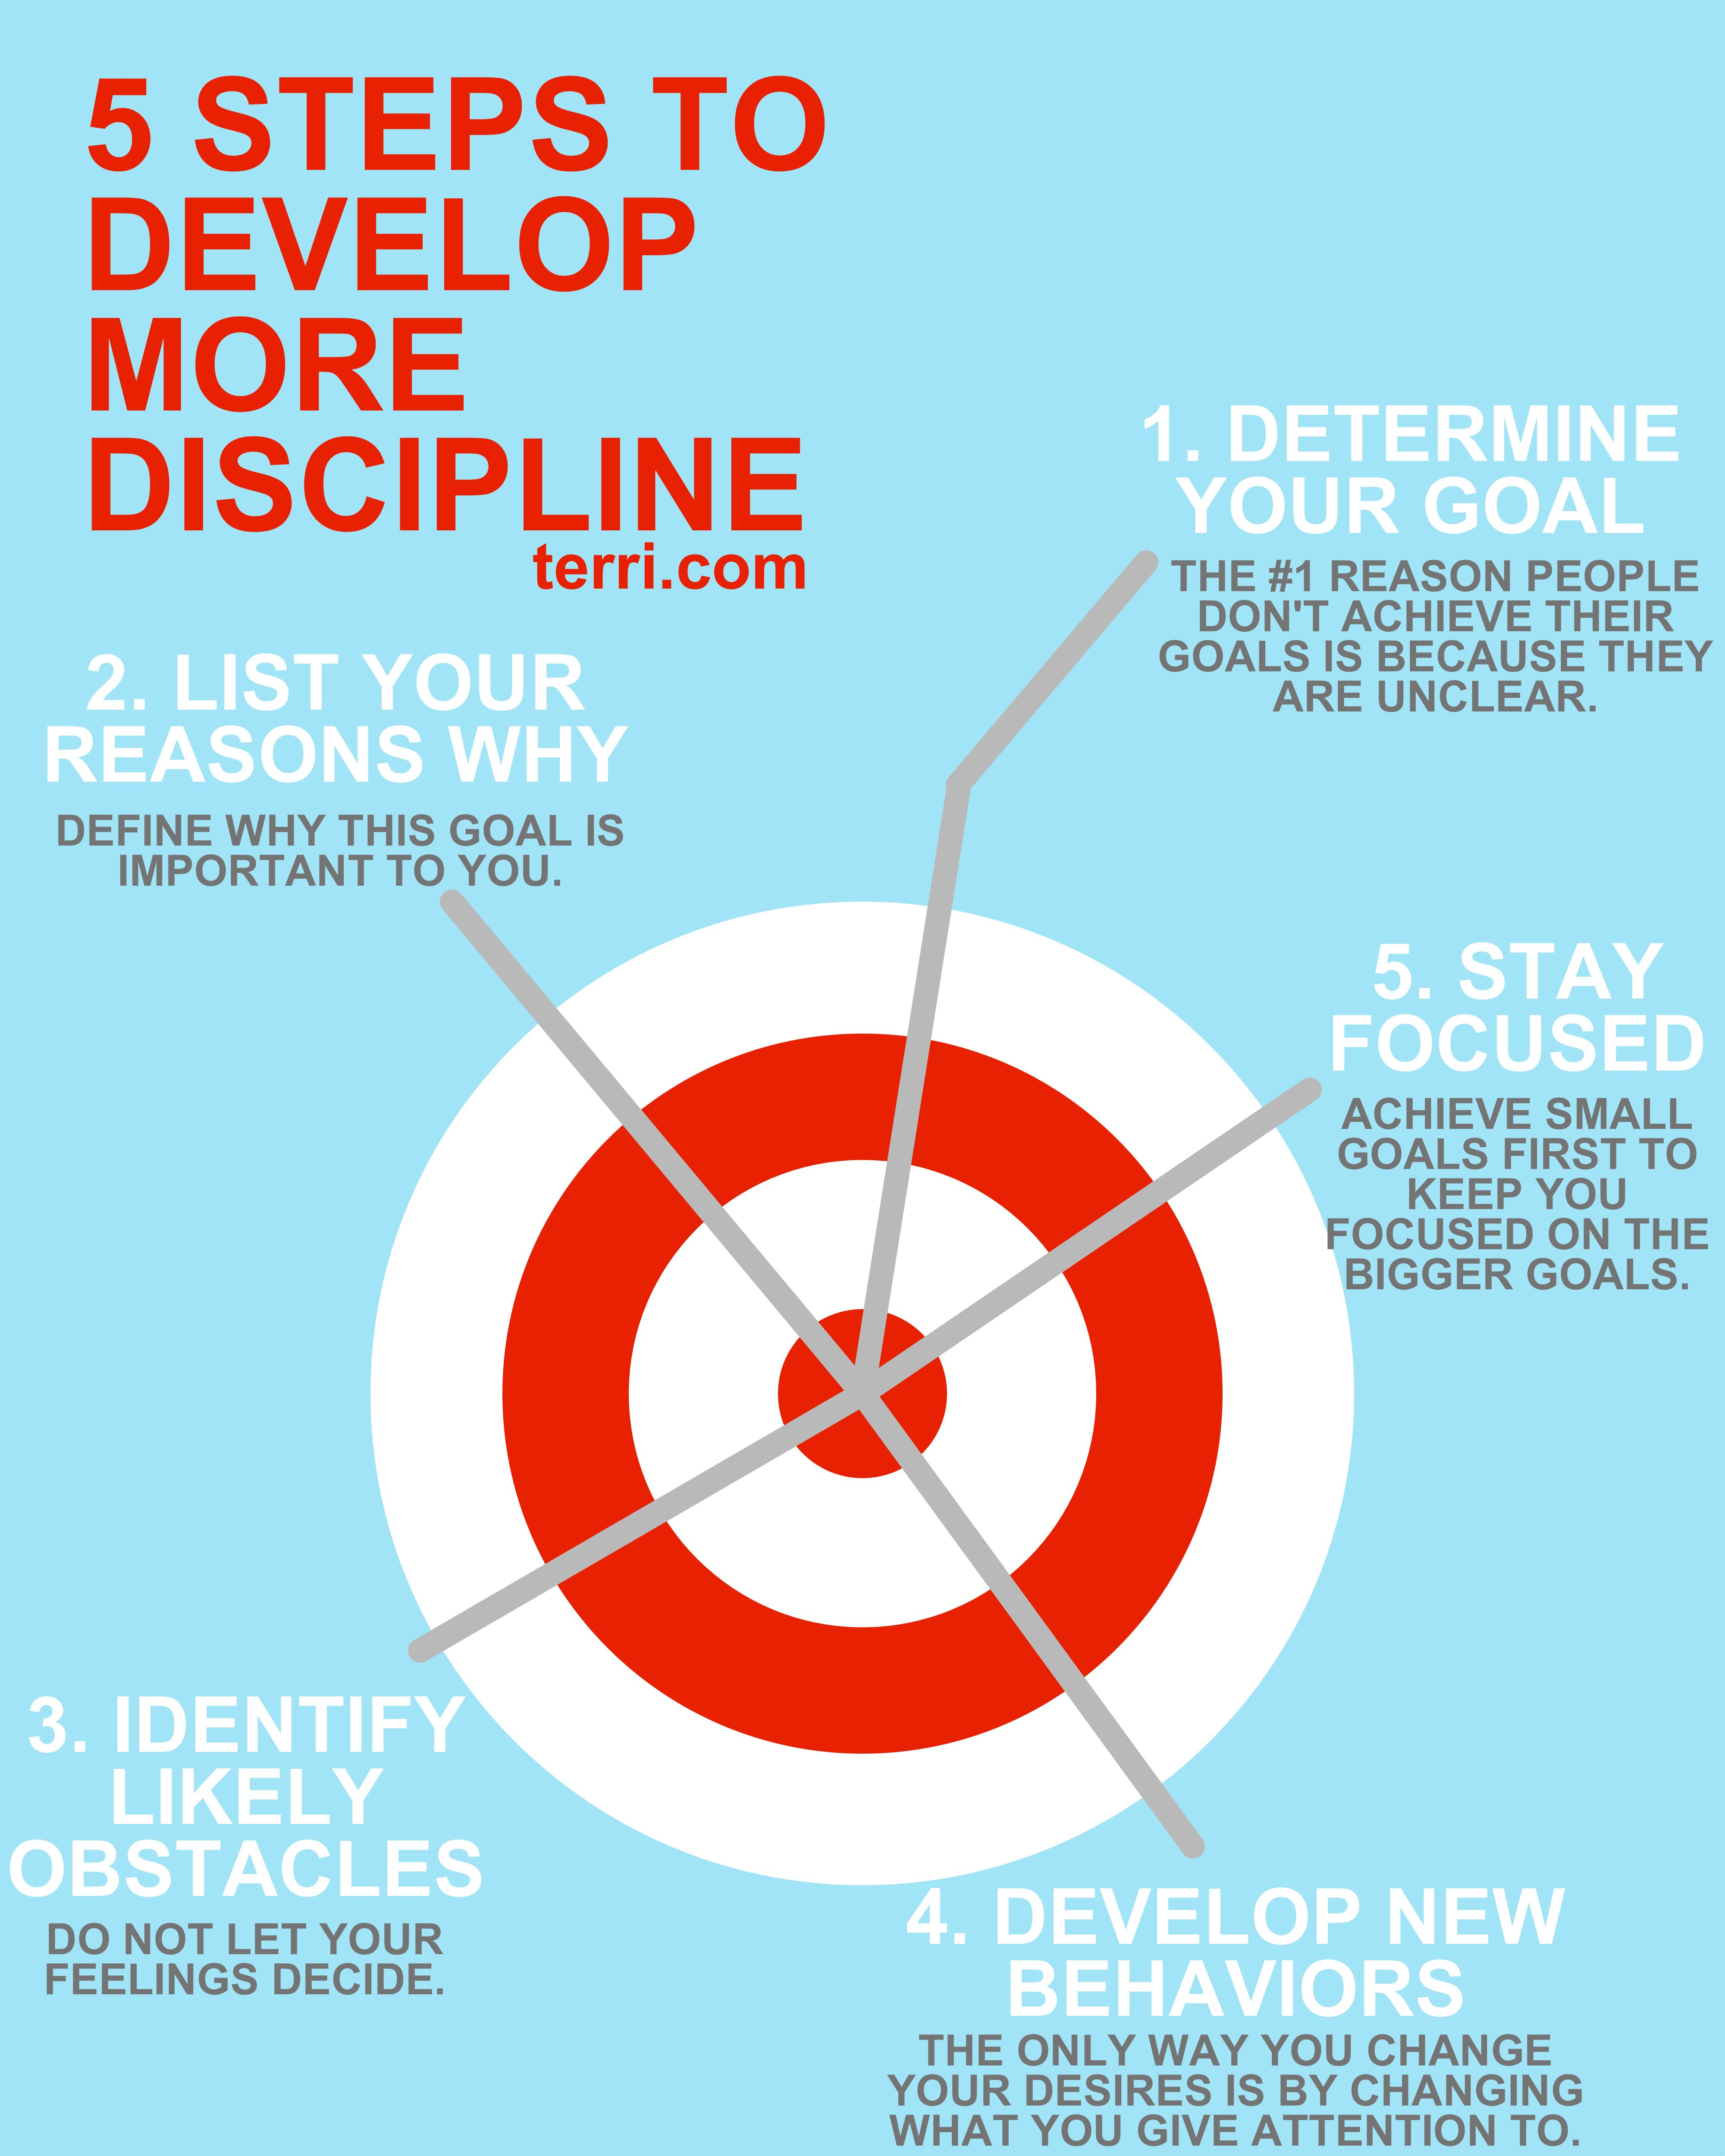 5 Steps to develop more discipline. This is one of my